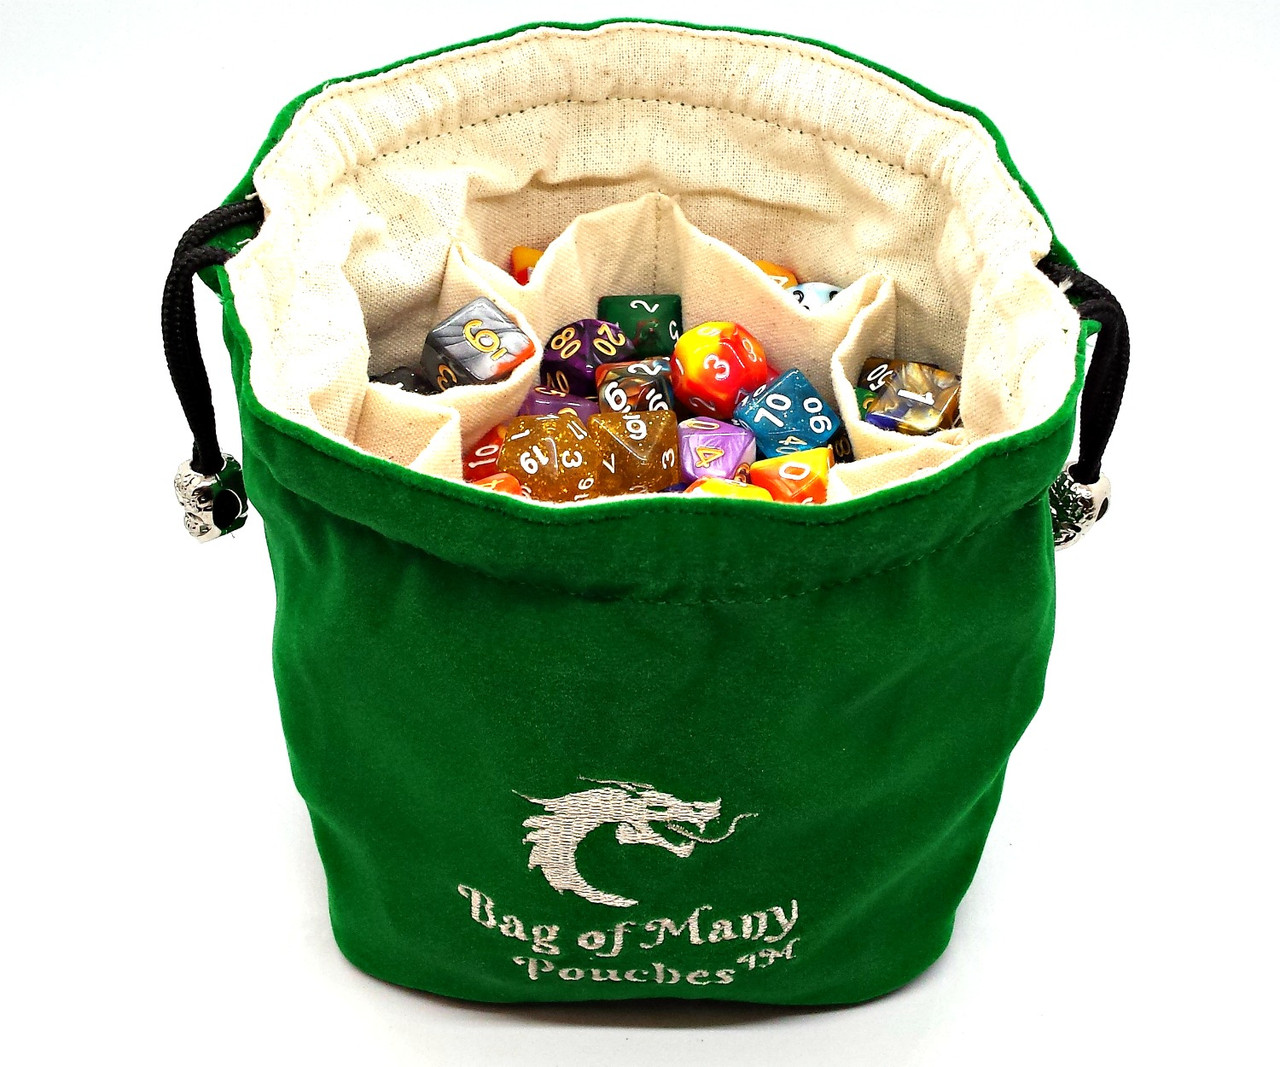 Bag Of Many Pouches Rpg Dnd Dice Bag Green